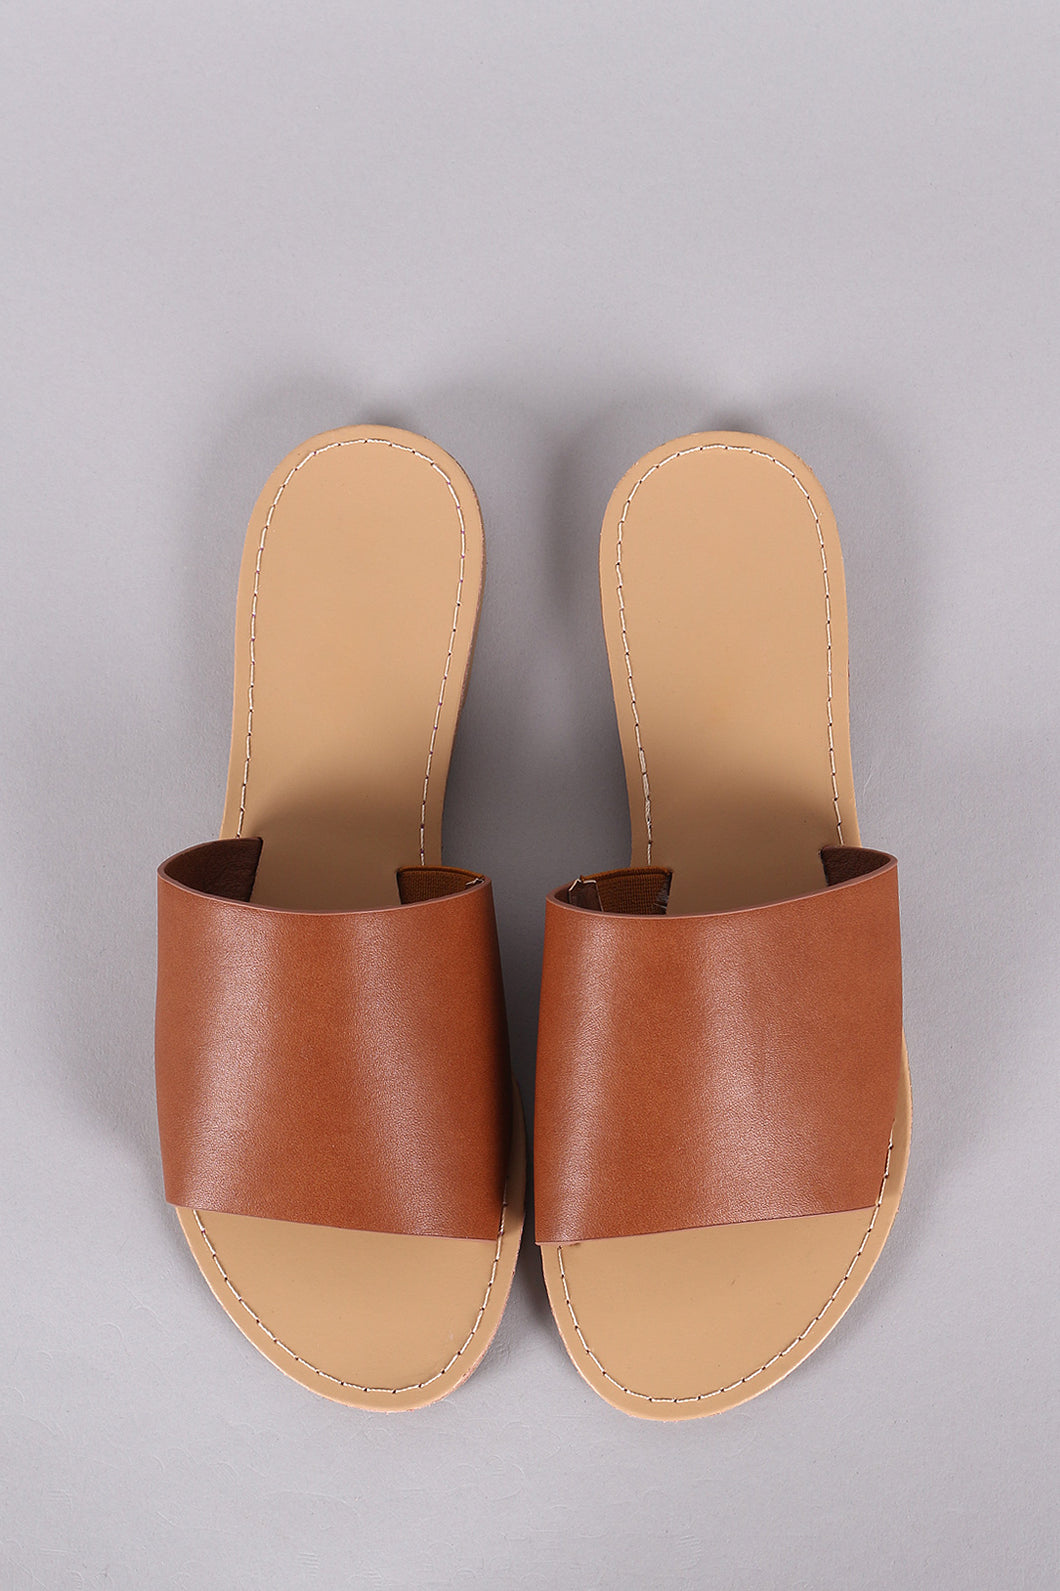 Vegan Leather Wide Band Slide Sandal - visitors